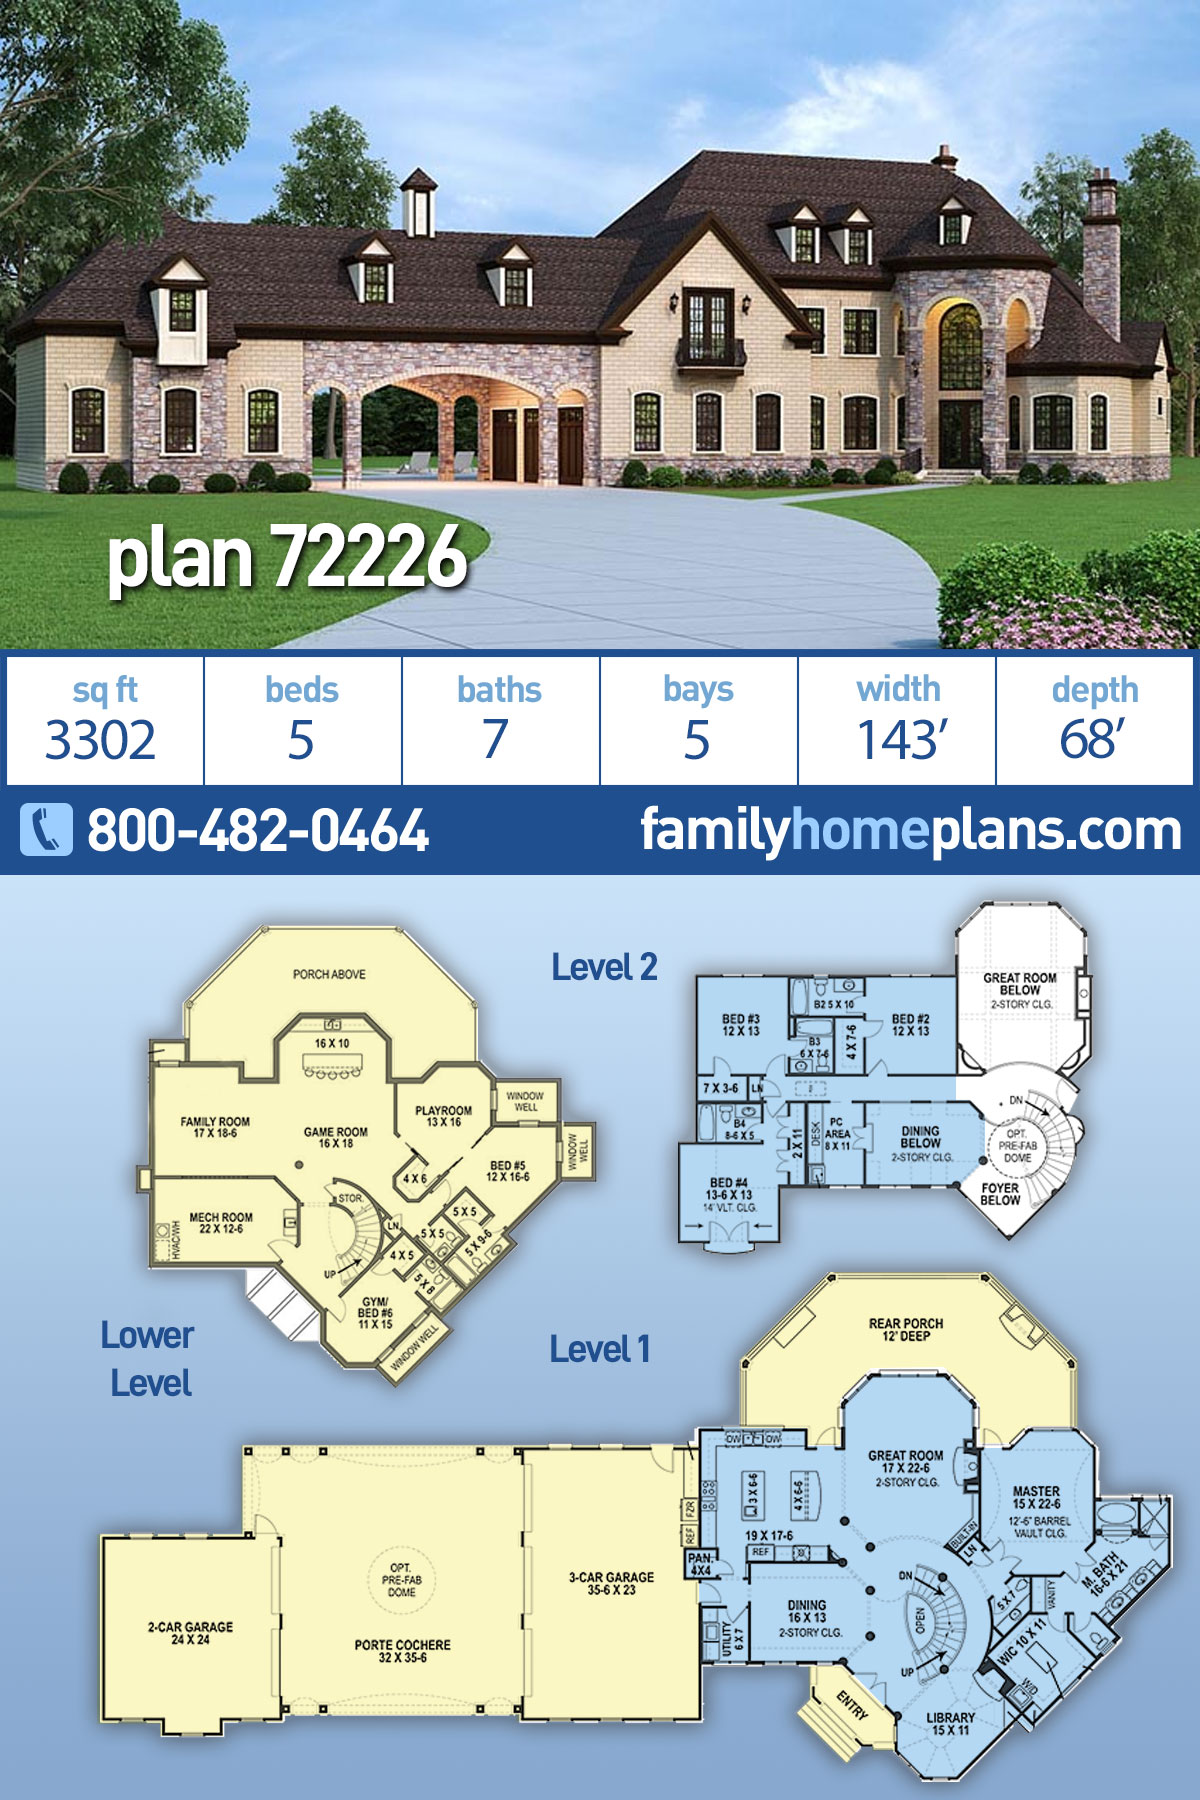 European, French Country House Plan 72226 with 5 Beds, 5 Baths, 5 Car Garage